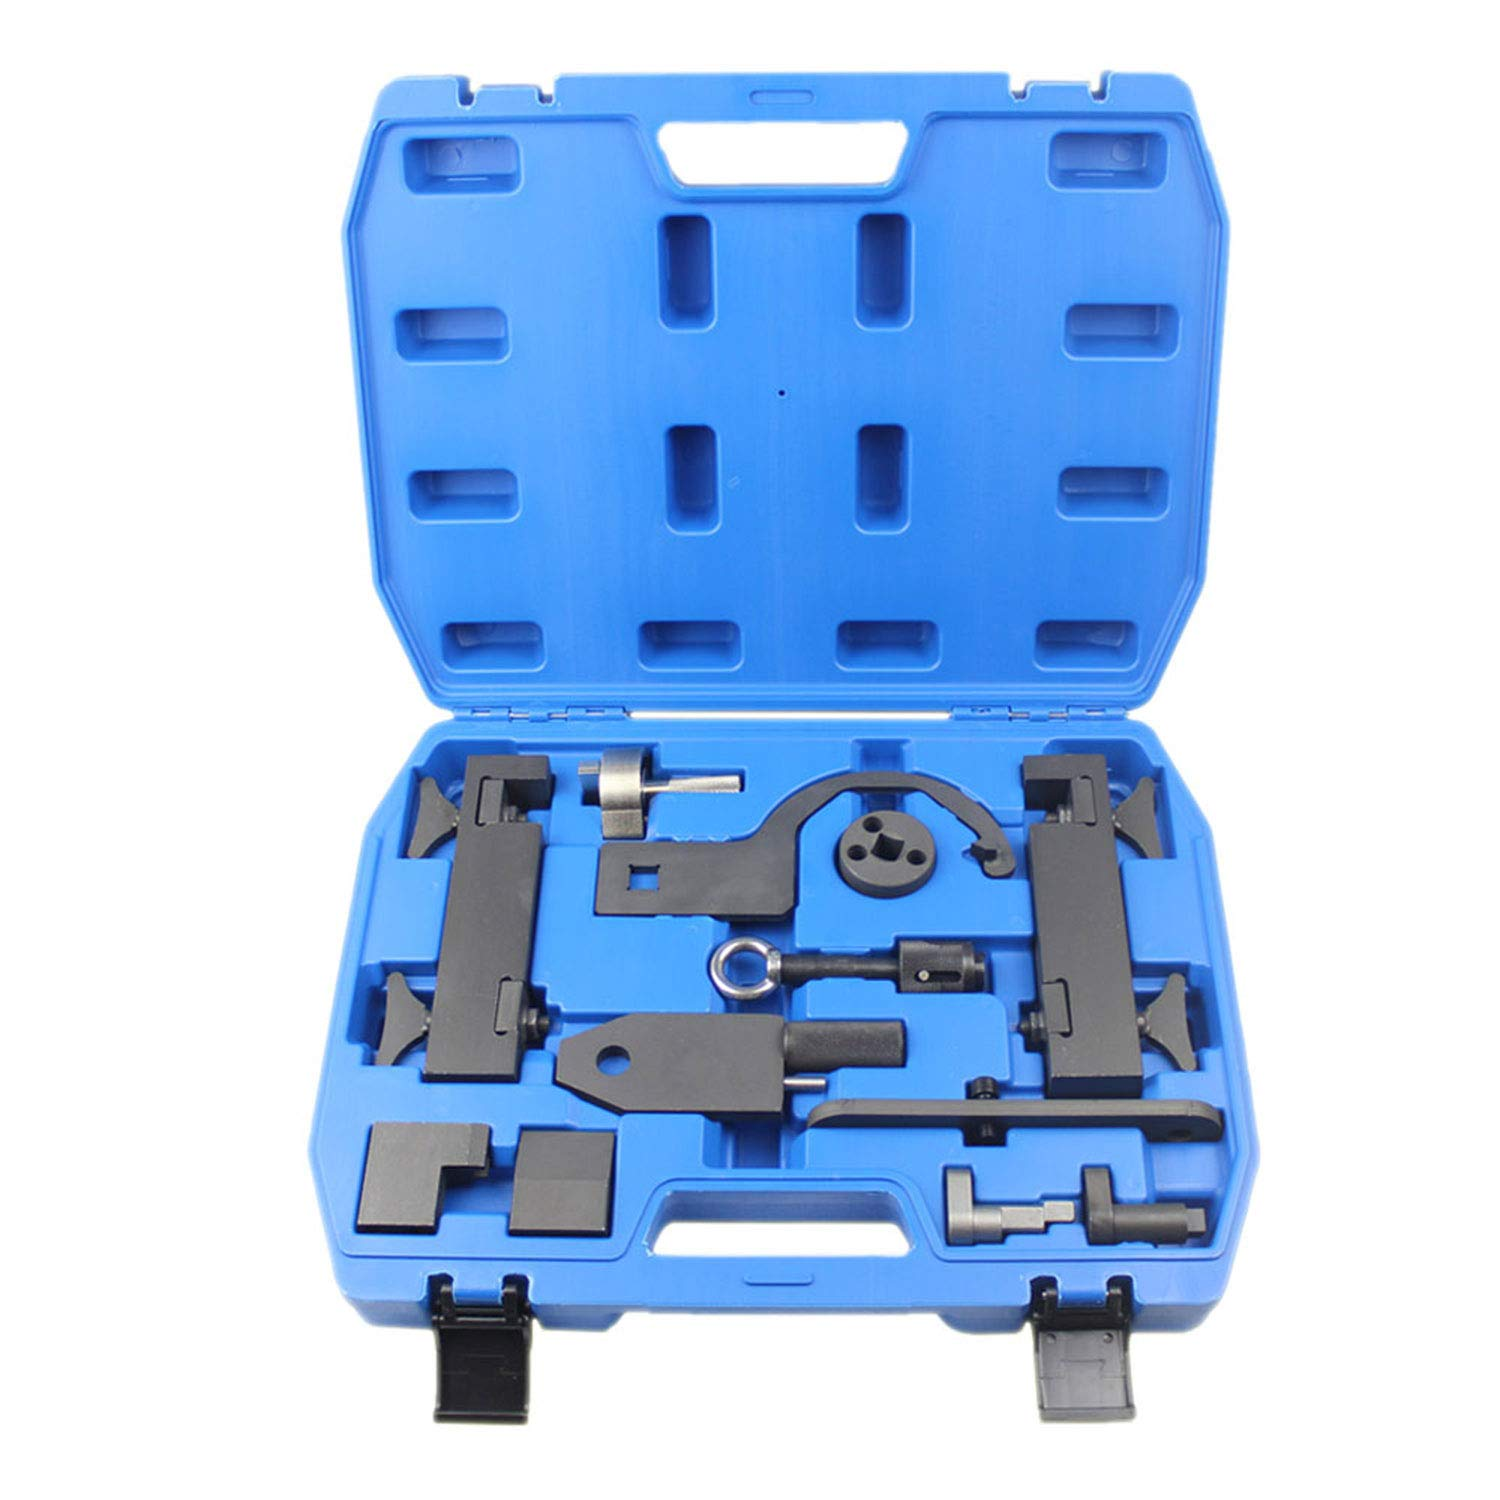 Camshaft Alignment Tool Kit for Land Rover Jaguar Discovry 4 Rang Rover Sport V8 5.0 L Engine Timing Tool with Fuel Pump/Injector Tool Whole Set